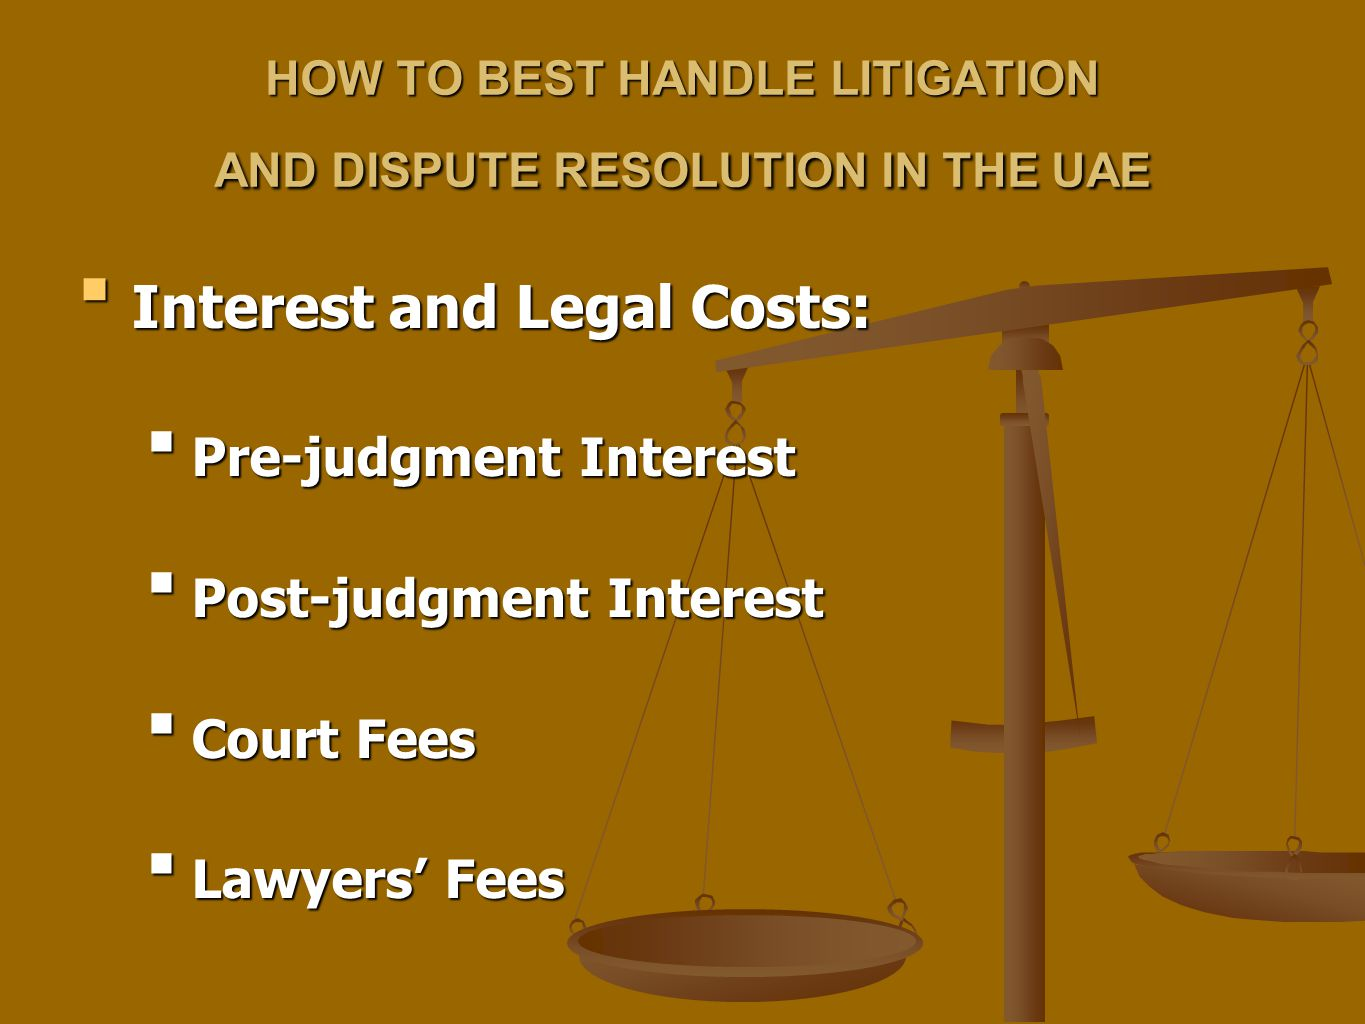 HOW TO BEST HANDLE LITIGATION AND DISPUTE RESOLUTION IN THE UAE Interest and Legal Costs:Interest and Legal Costs: Pre-judgment InterestPre-judgment Interest Post-judgment InterestPost-judgment Interest Court FeesCourt Fees Lawyers' FeesLawyers' Fees